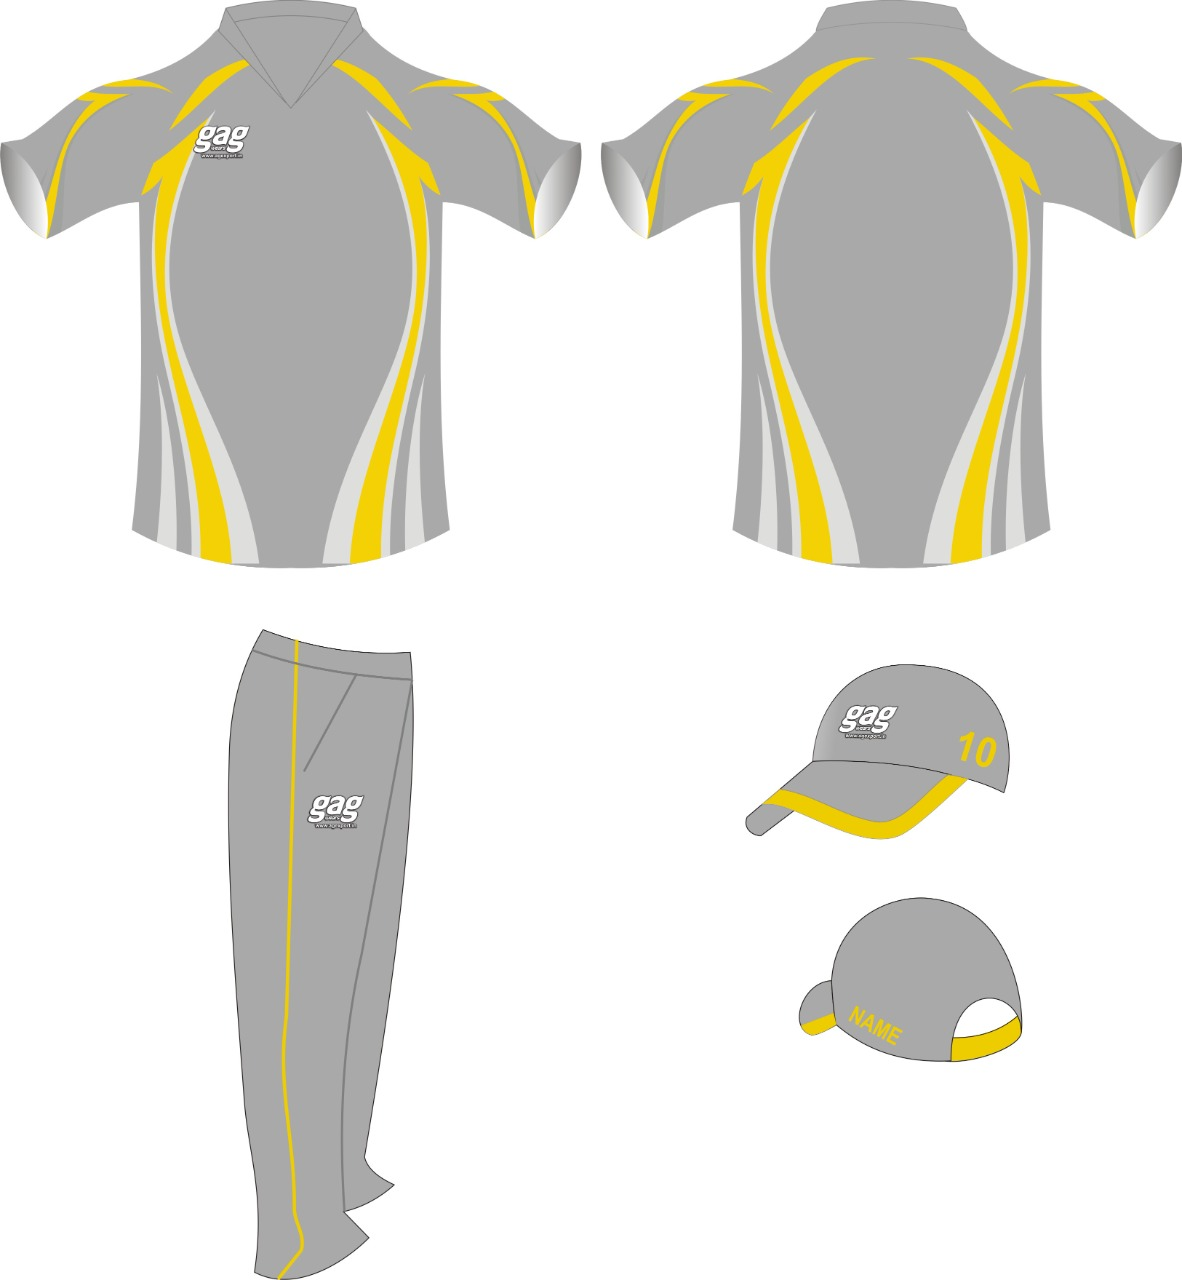 Cricket Tshirt Manufacturers in Jalandhar in Australia